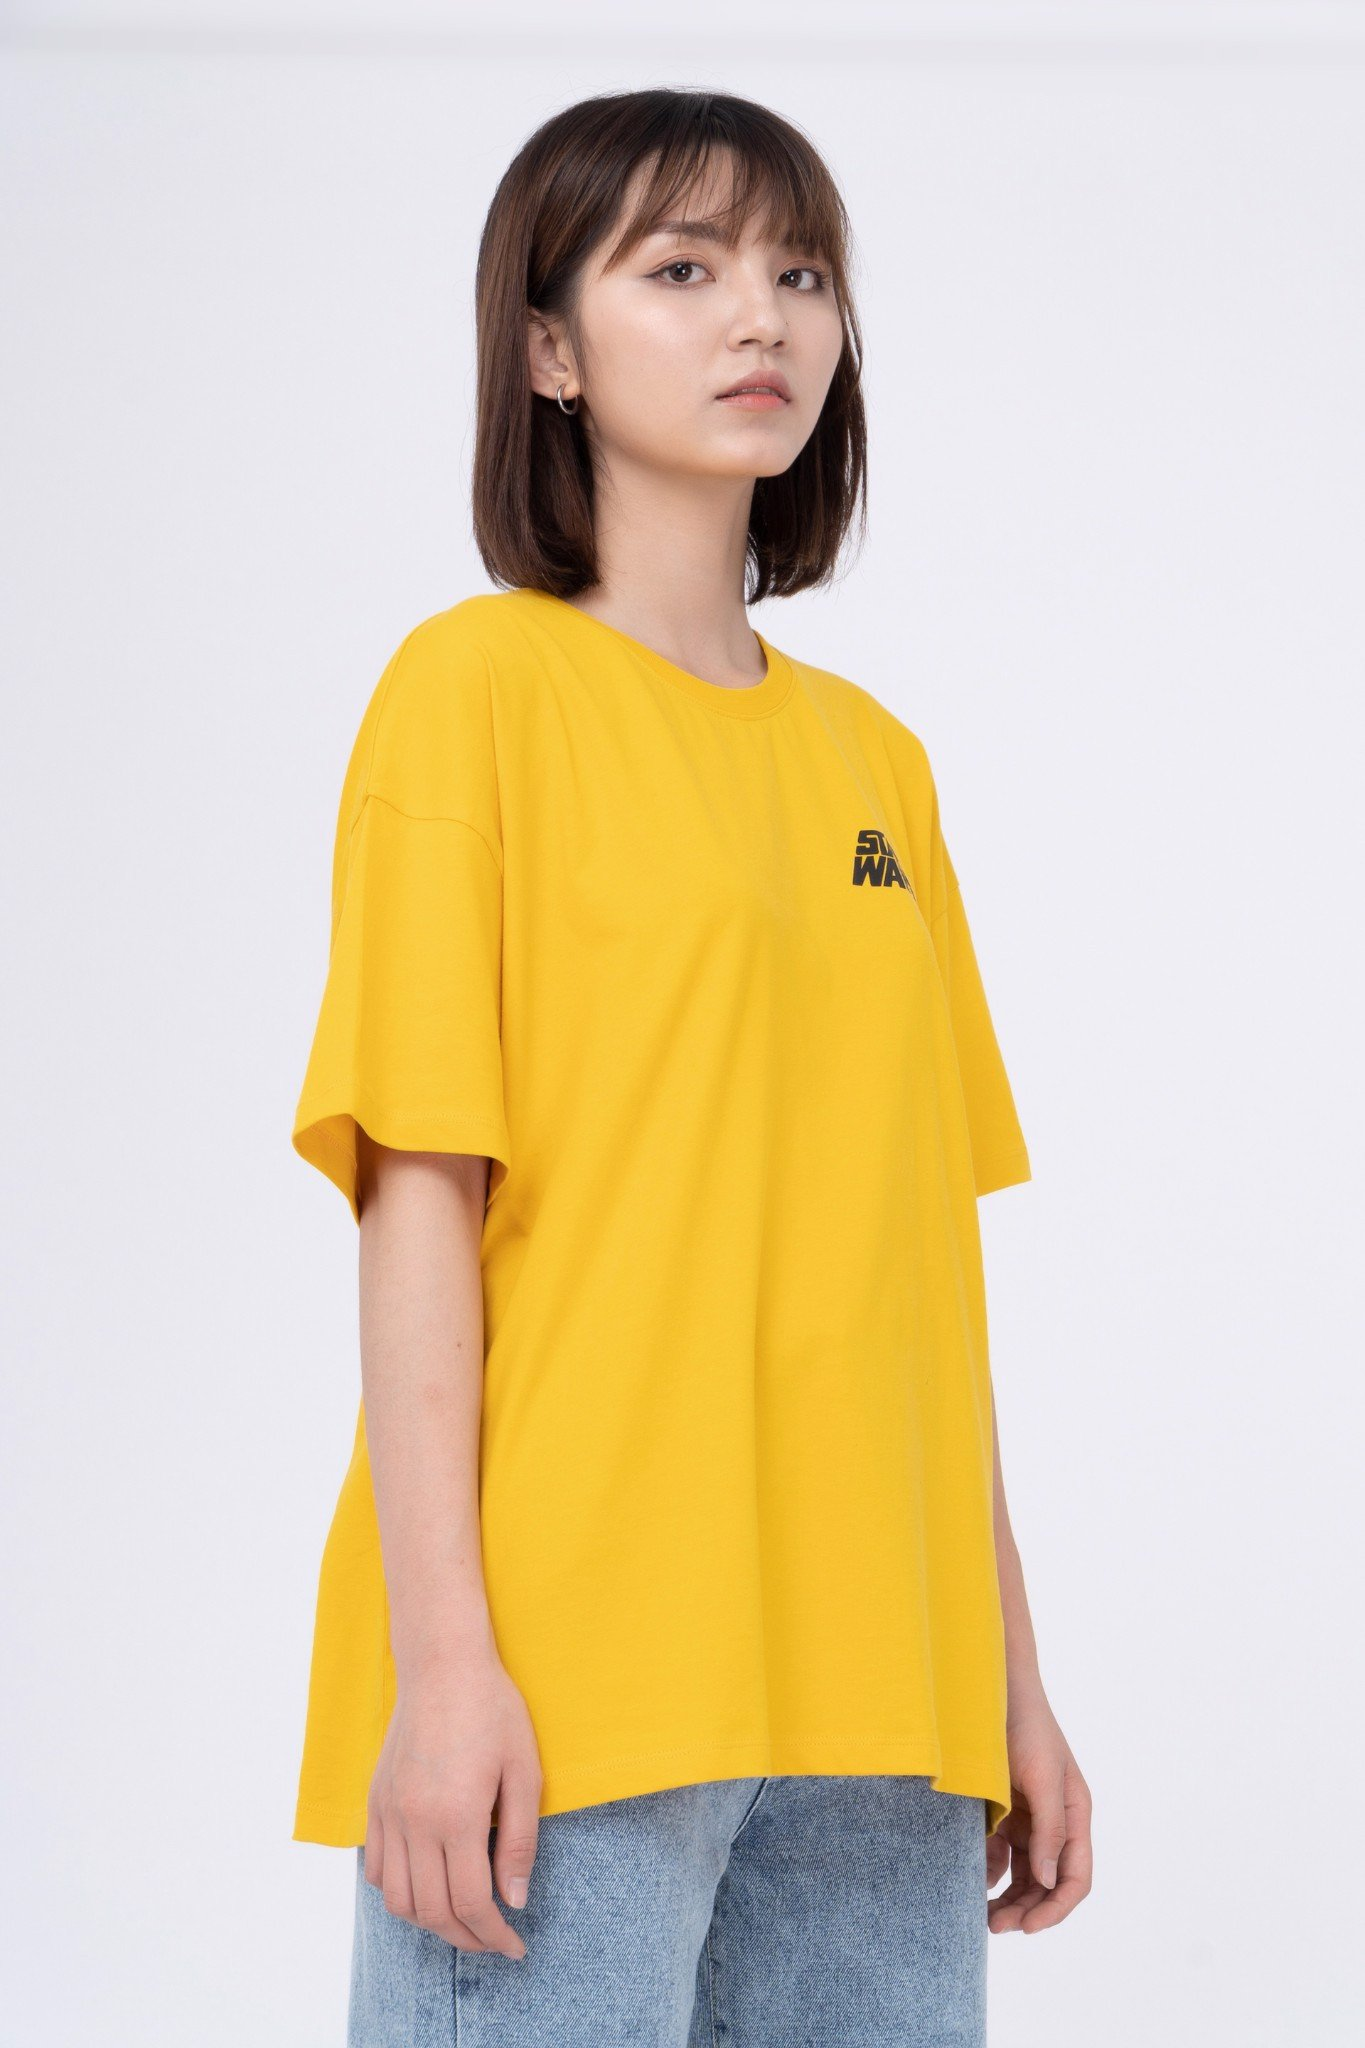 Vàng/ Yellow + Gold